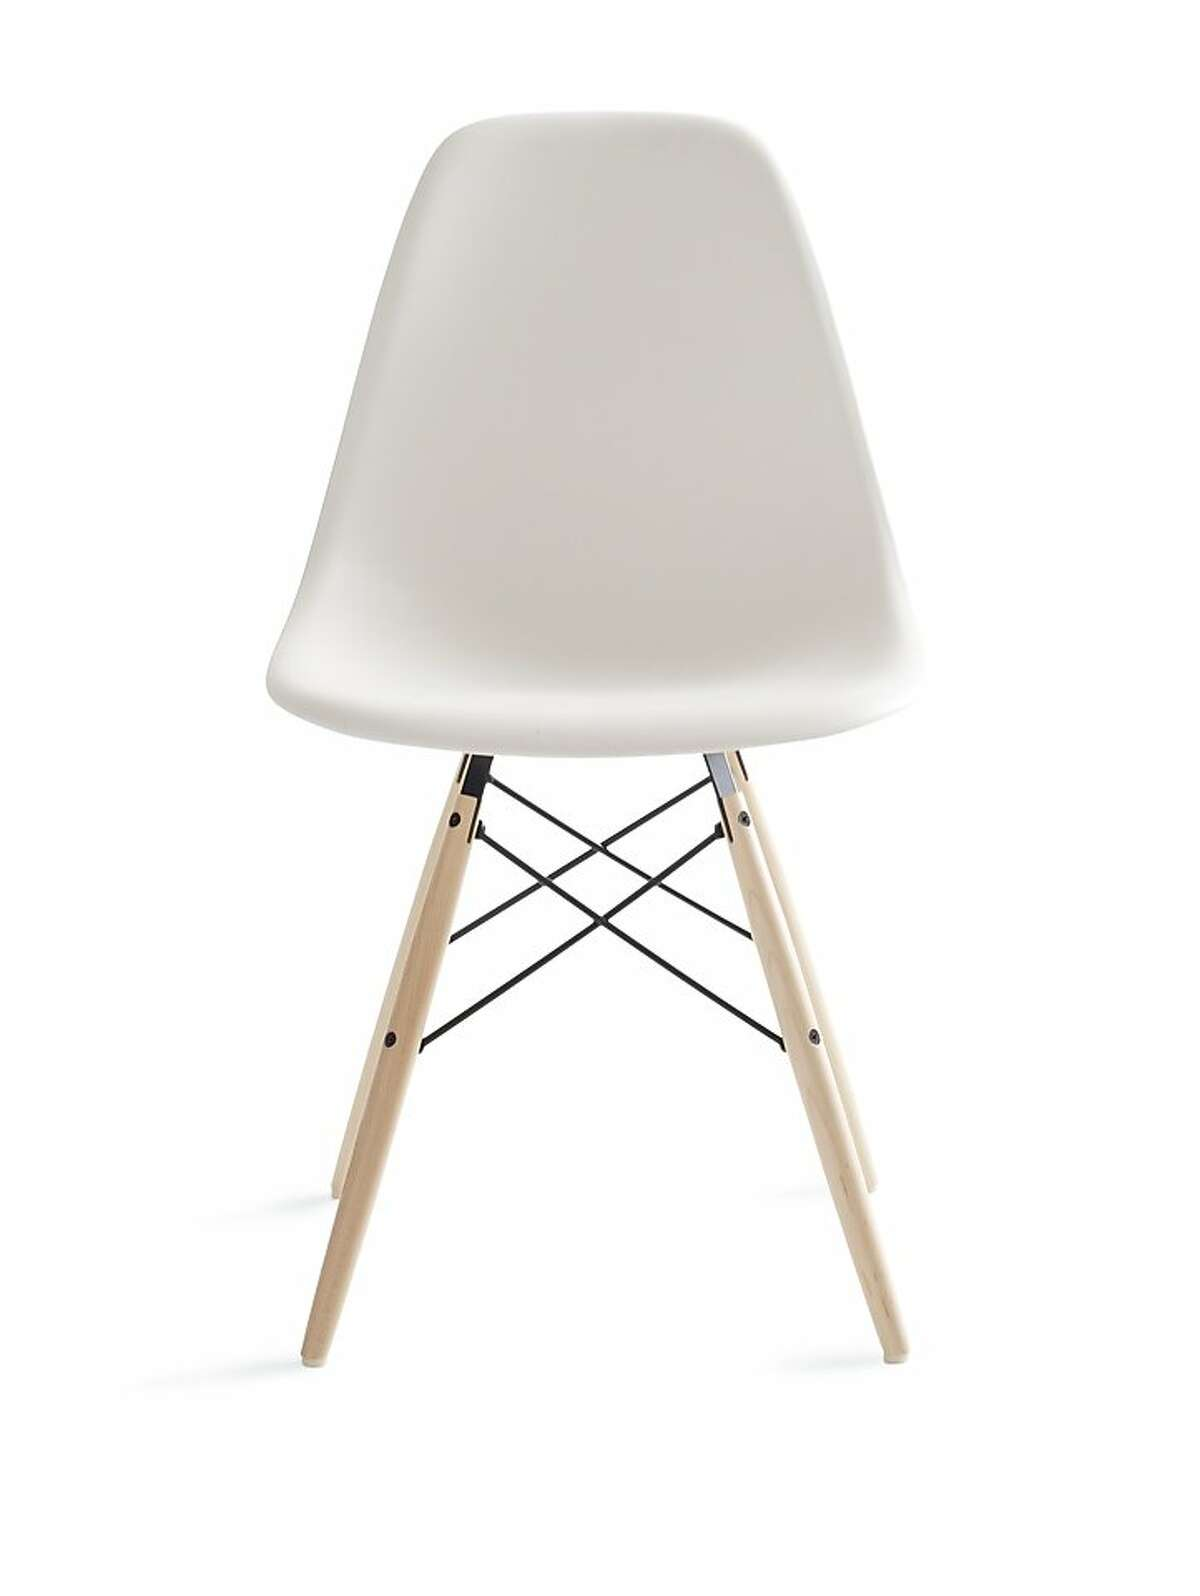 More: $399 to $428 Eames Molded Plastic Dowel-Leg Side Chair at Design Within Reach (dwr.com)